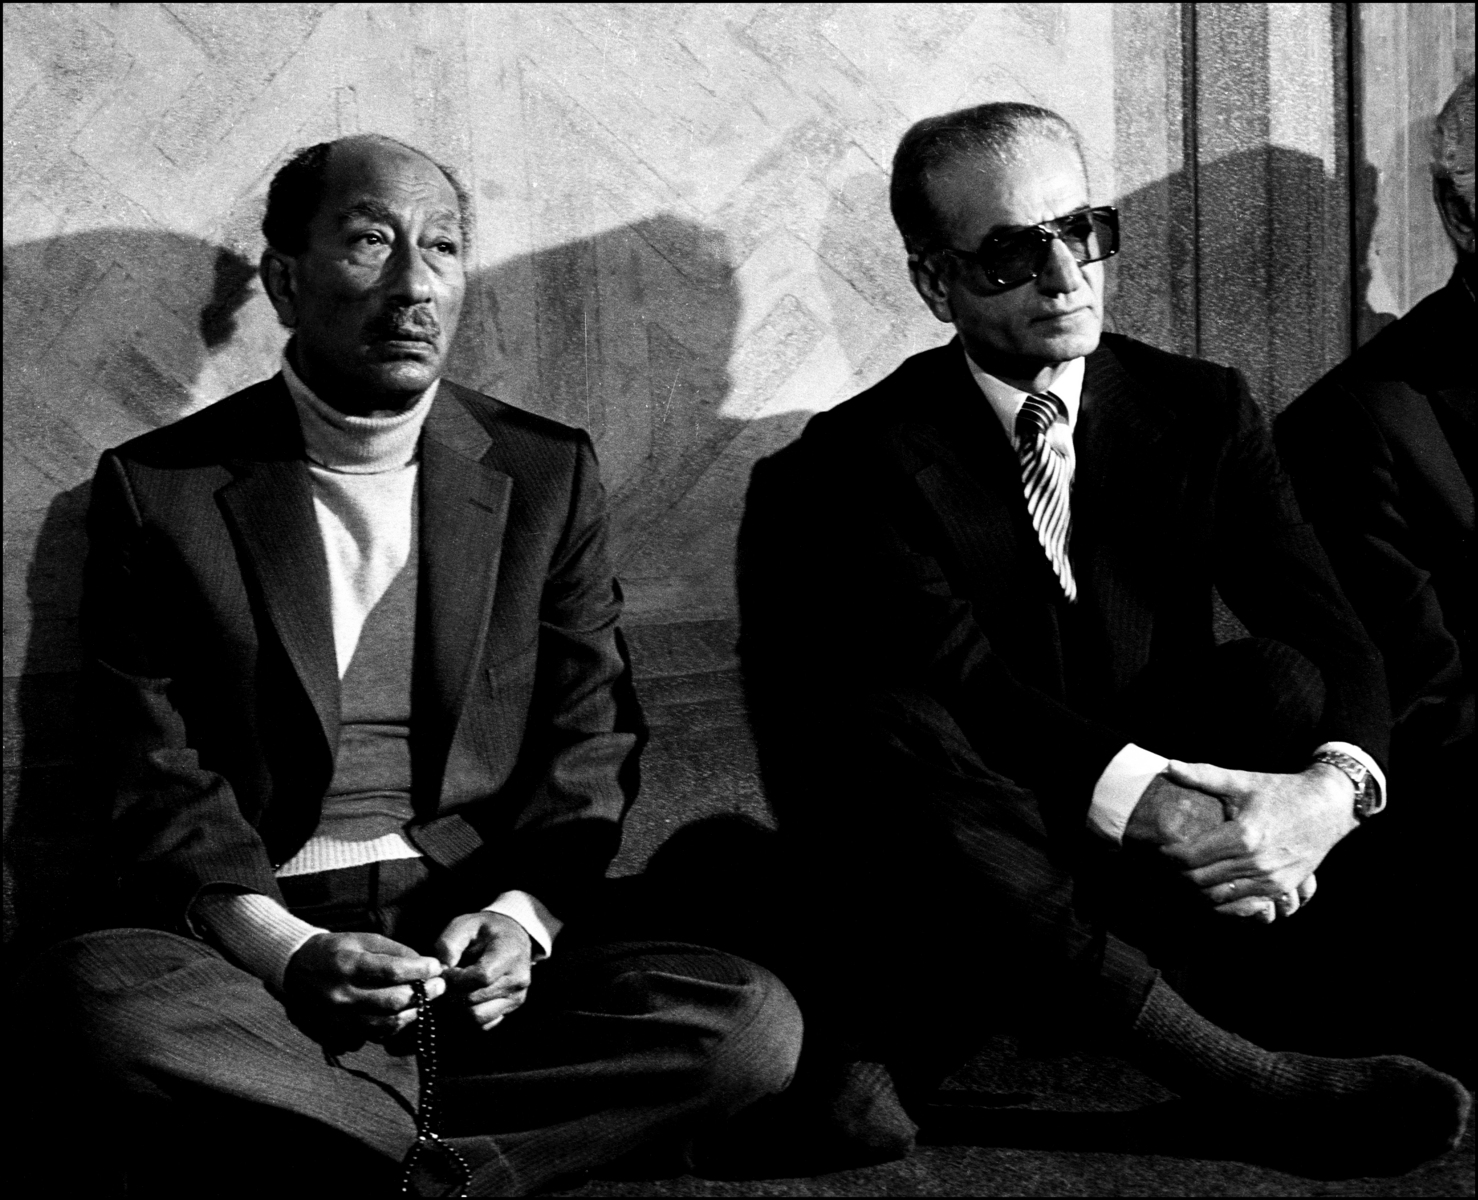 Egyptian President sits with the Shah of Iran in a mosque in Aswan, Egypt,  1979. : Sadat-Mubarak 1978-1981 : BILL FOLEY